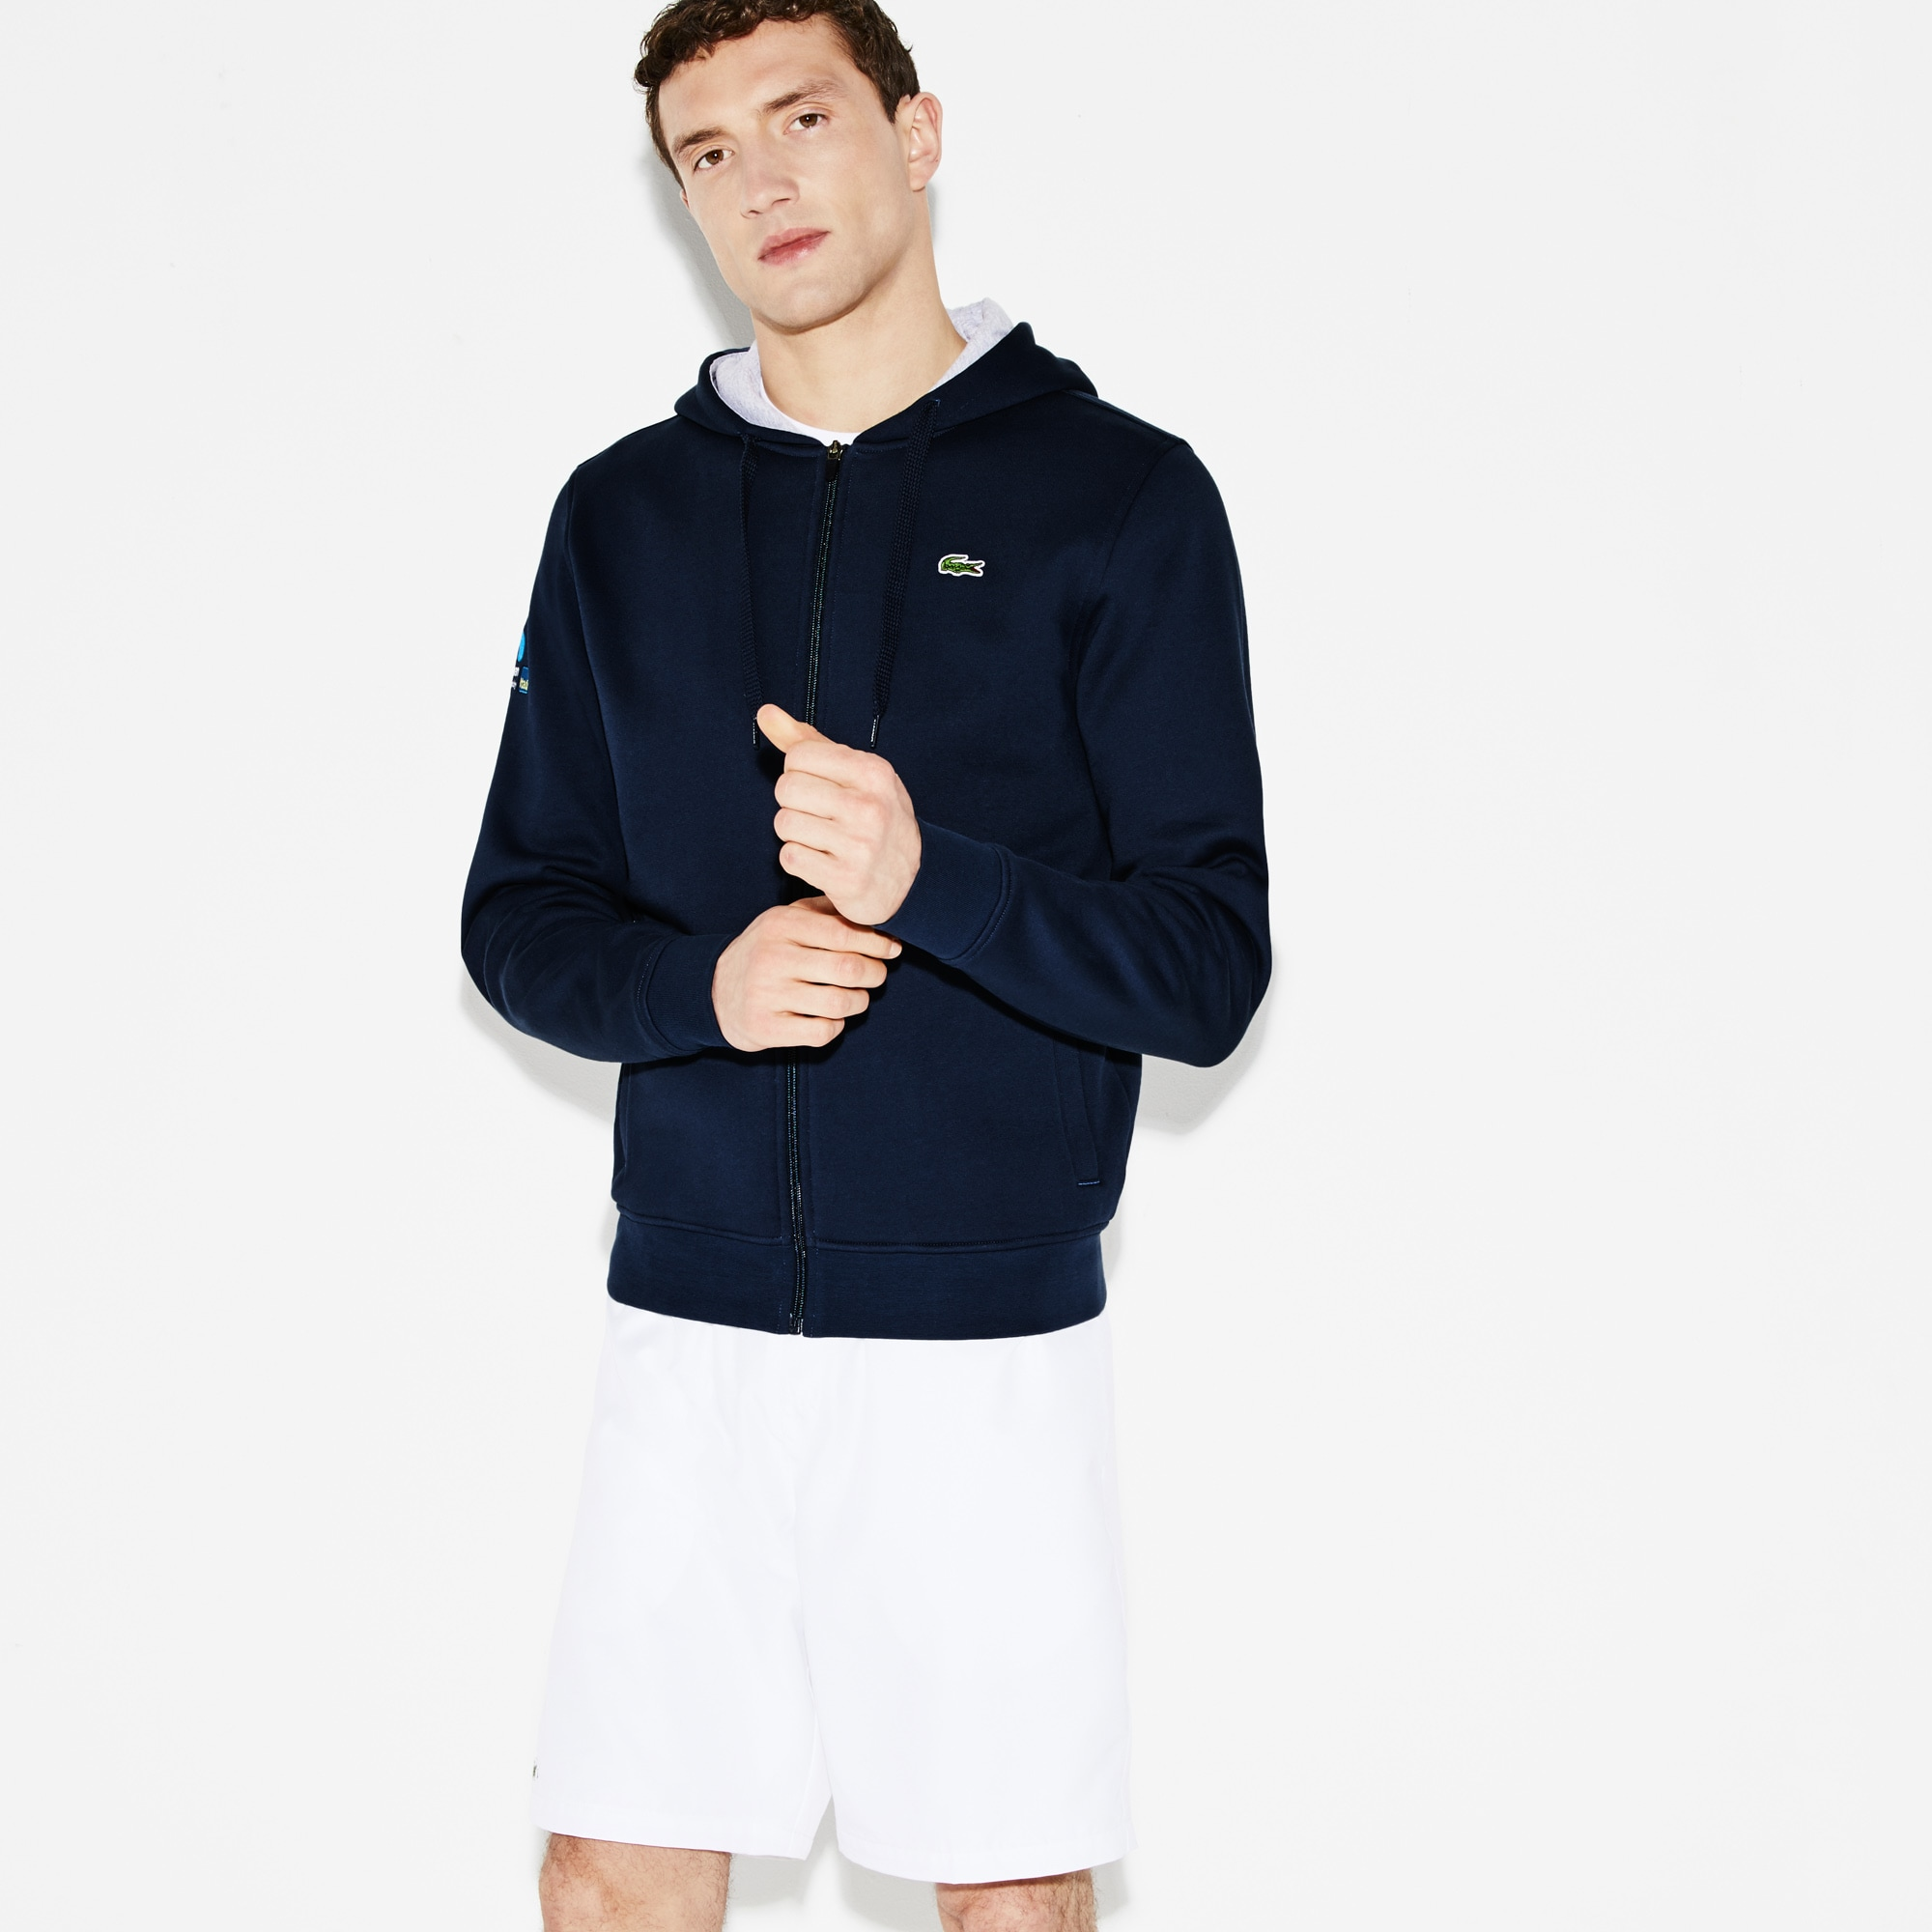 Men's SPORT Miami Open Hooded Fleece Tennis Sweatshirt